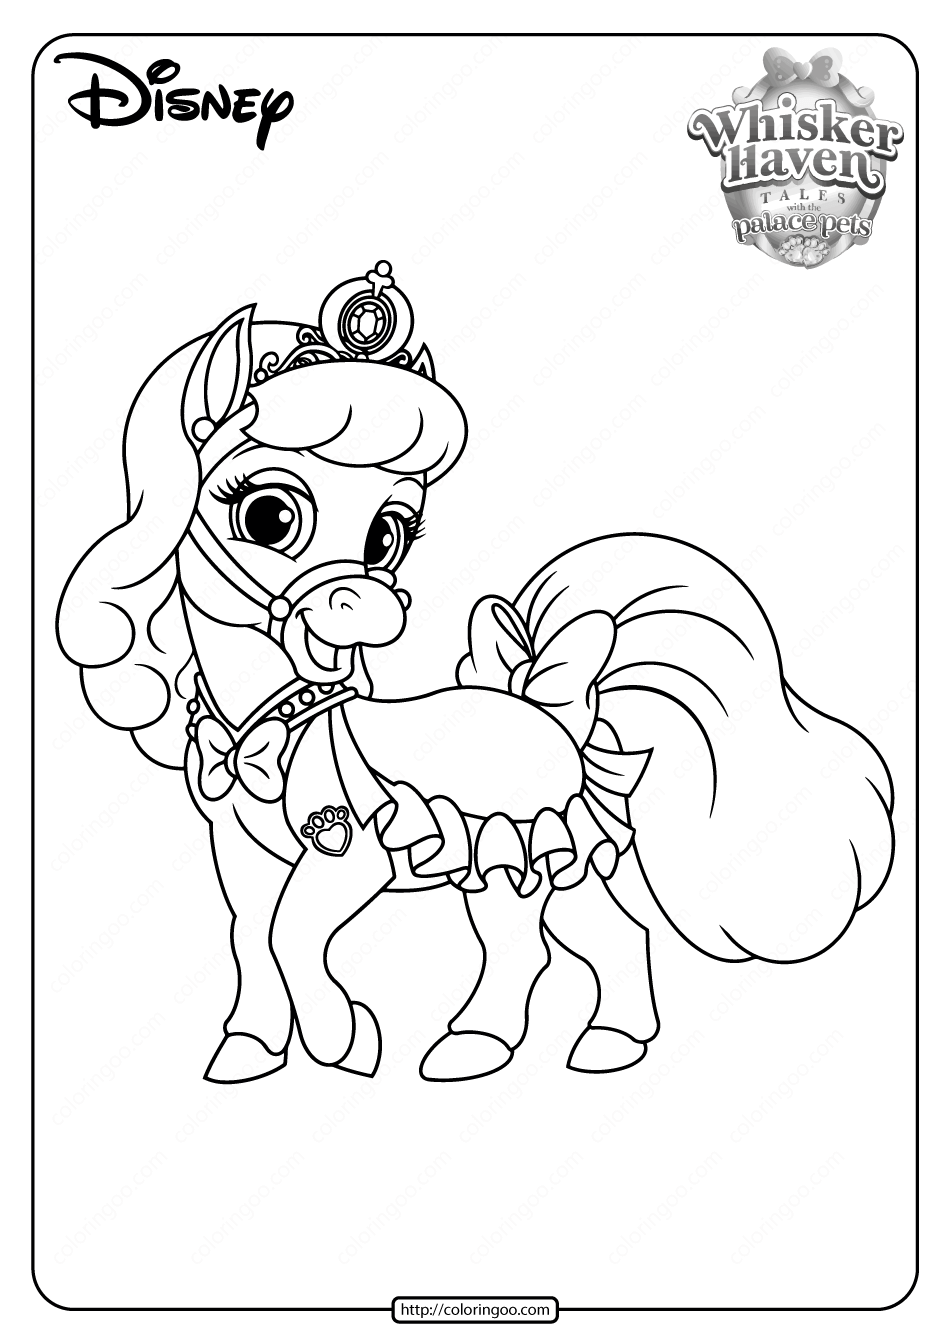 Printable Palace Pets Bibbidy PDF Coloring Pages